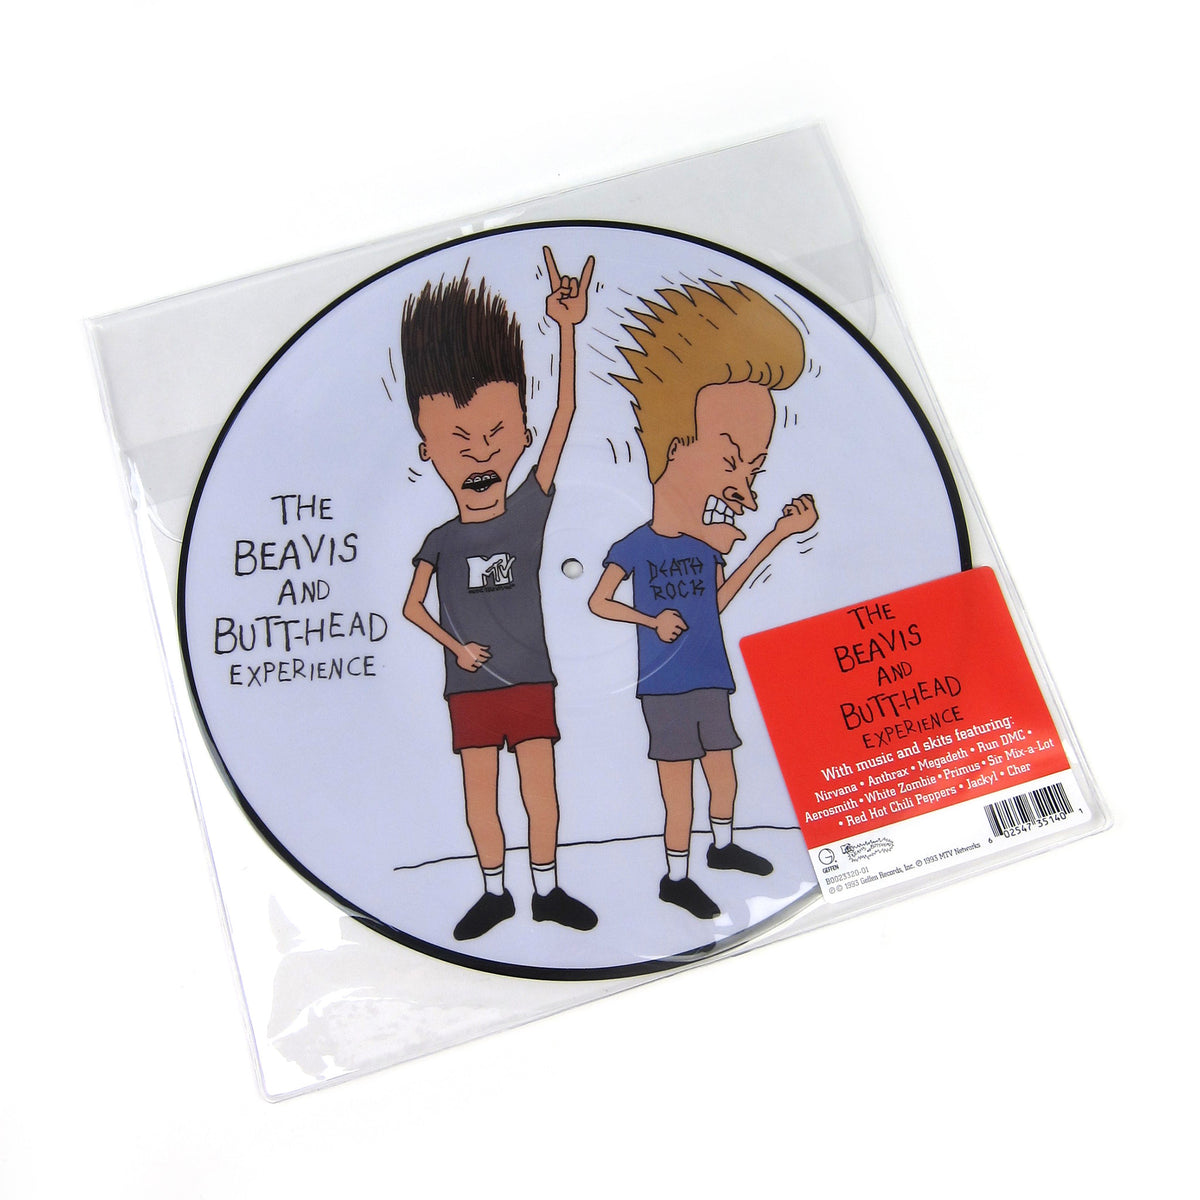 Beavis And Butt-Head: The Beavis And Butt-Head Experience (Pic Disc) Vinyl LP